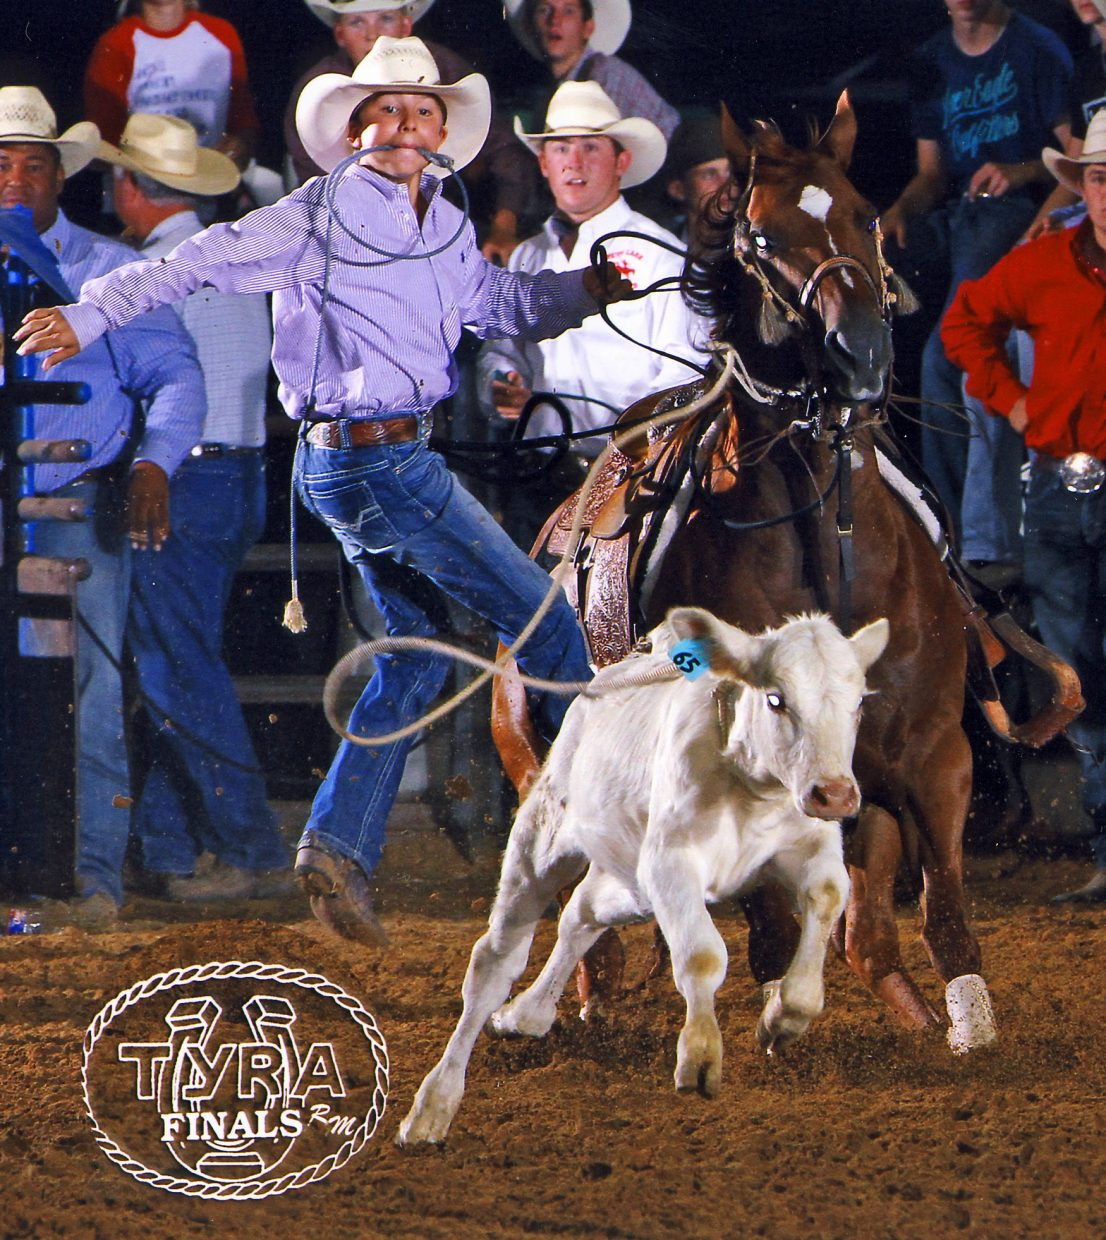 Sutton's RWS Pobres Allusive was the high point Texas Junior High School Rodeo calf horse and champion at the Joe Beaver Invitational Roping.